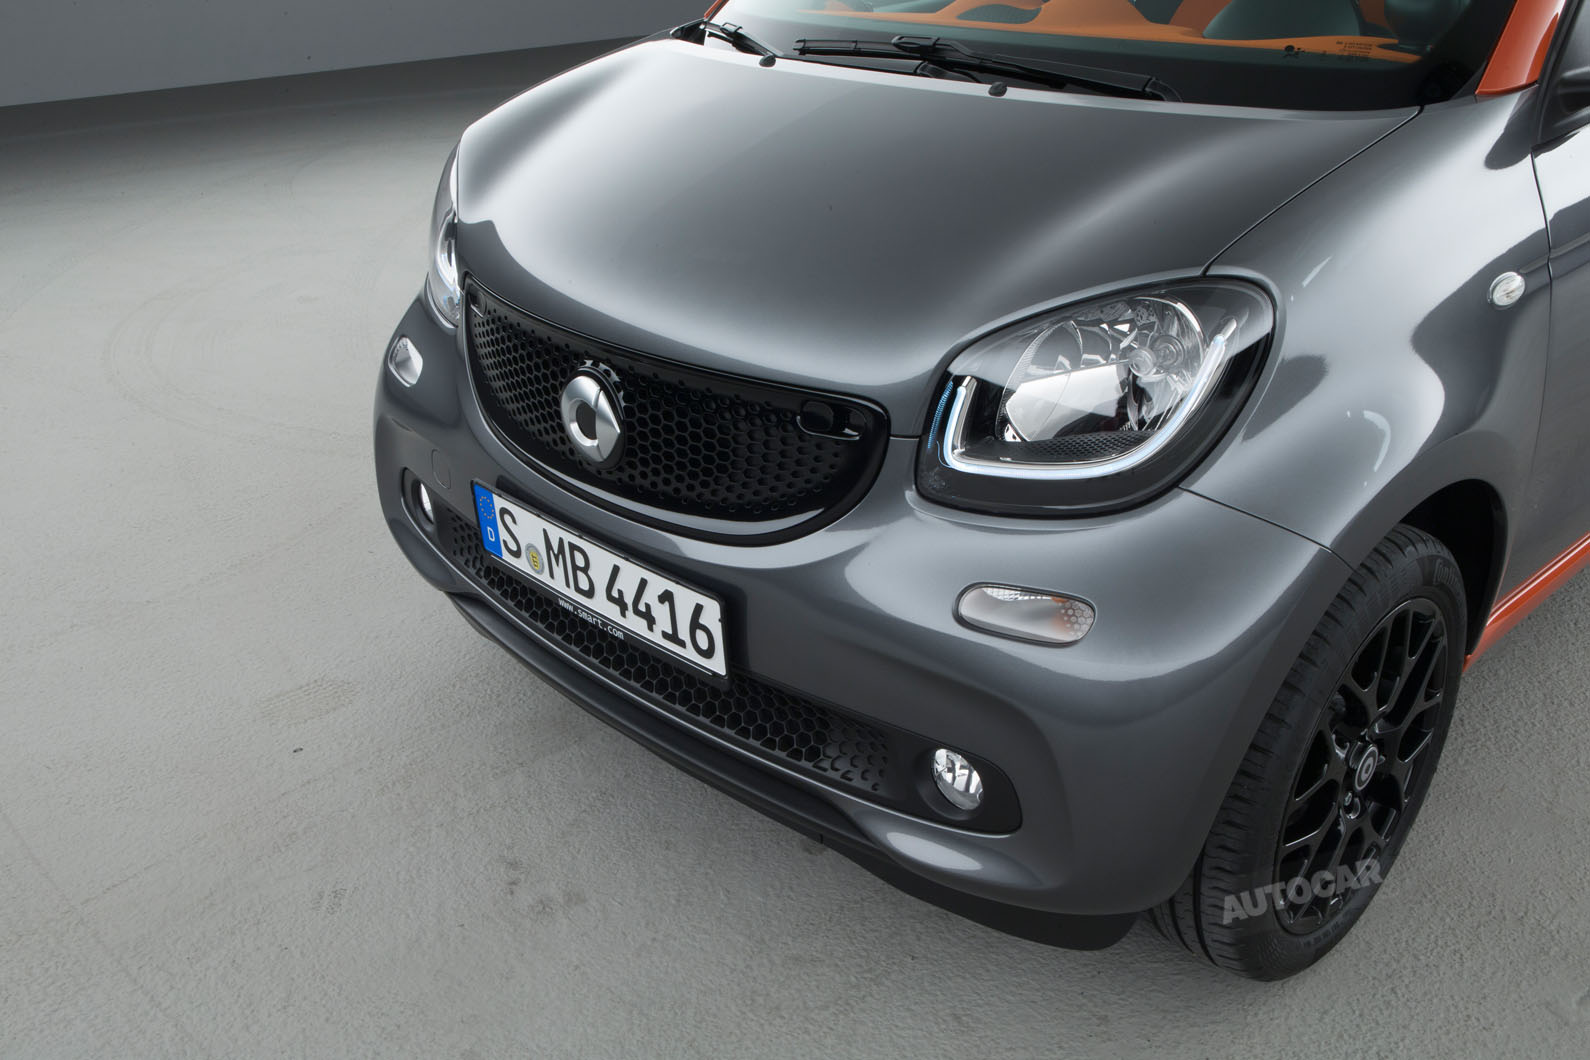 2014 - [Smart] Forfour [W453] - Page 12 Smart-fortwo-forfour-z-t84o10